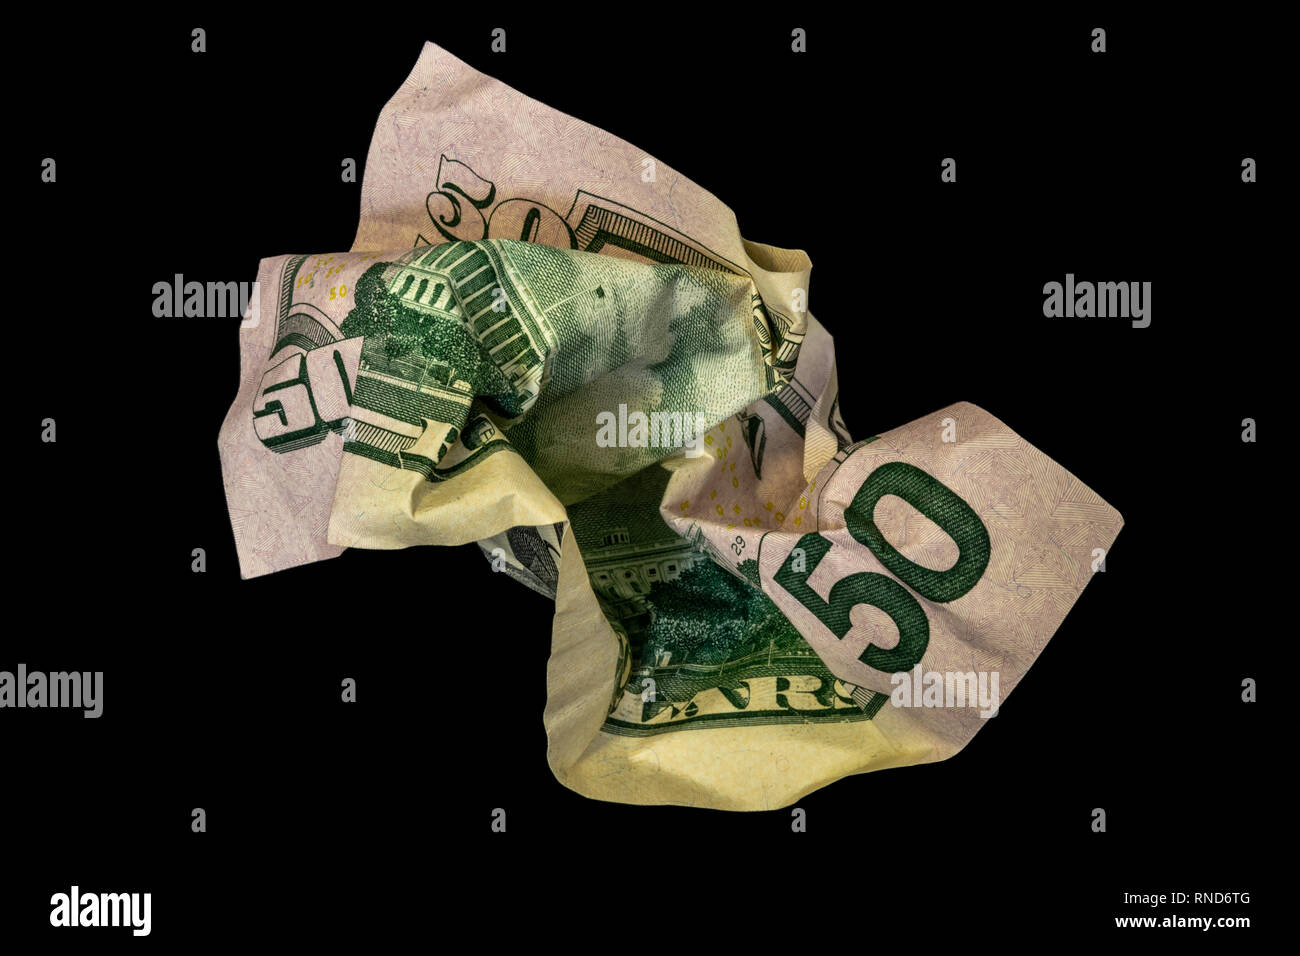 Crumpled fifty dollar bill isolated on black background - Stock Image